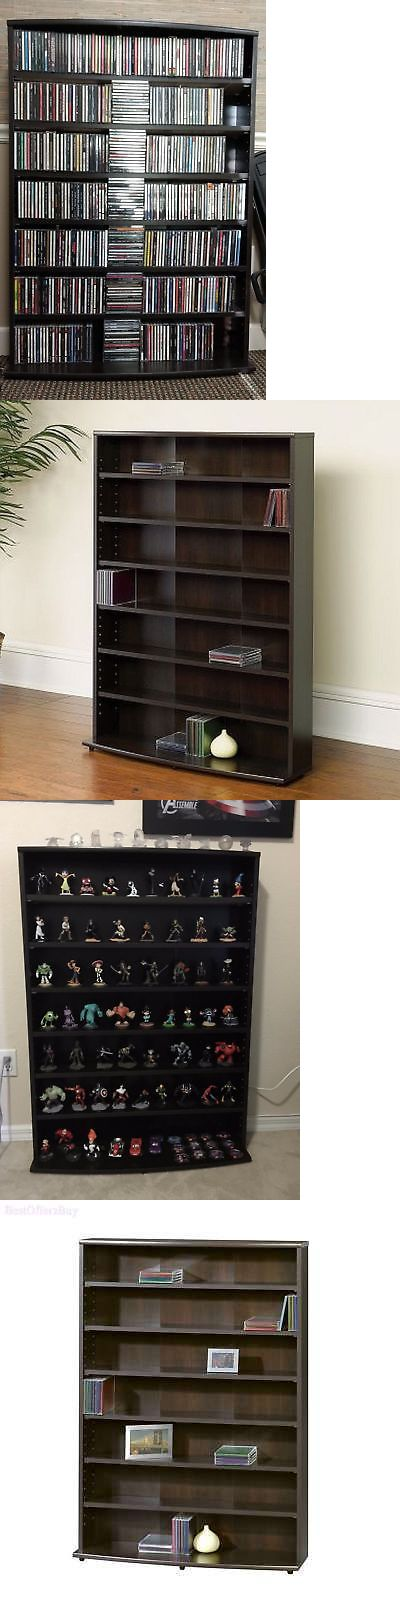 Media Cases and Storage: Media Tower Rack Shelf Cabinet 426 Cd 280 Dvd Game Case Storage Stand Organizer -> BUY IT NOW ONLY: $64.99 on eBay!